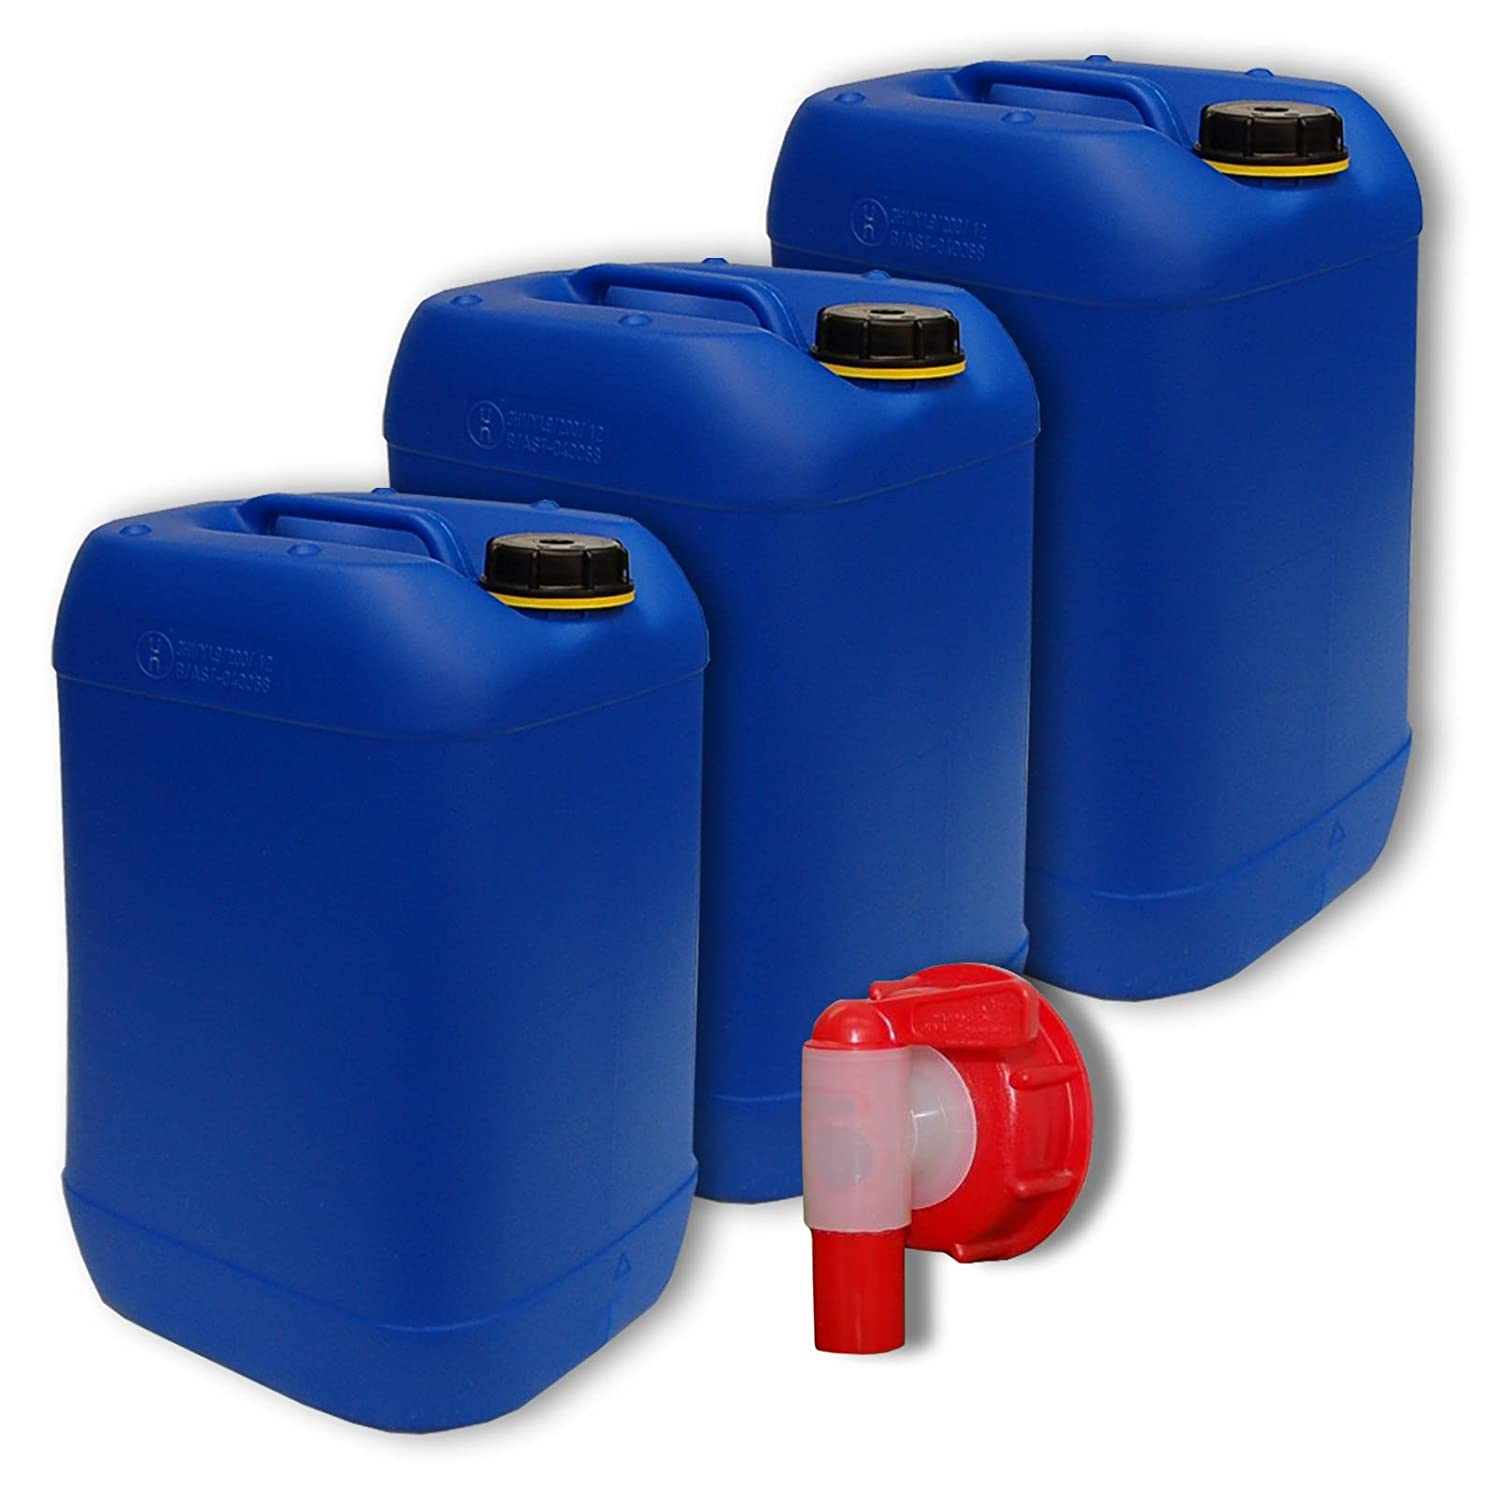 water container 1 tap Lot of 3 plastic jerricans 30 L 22001x3+22010 DIN 61 natural